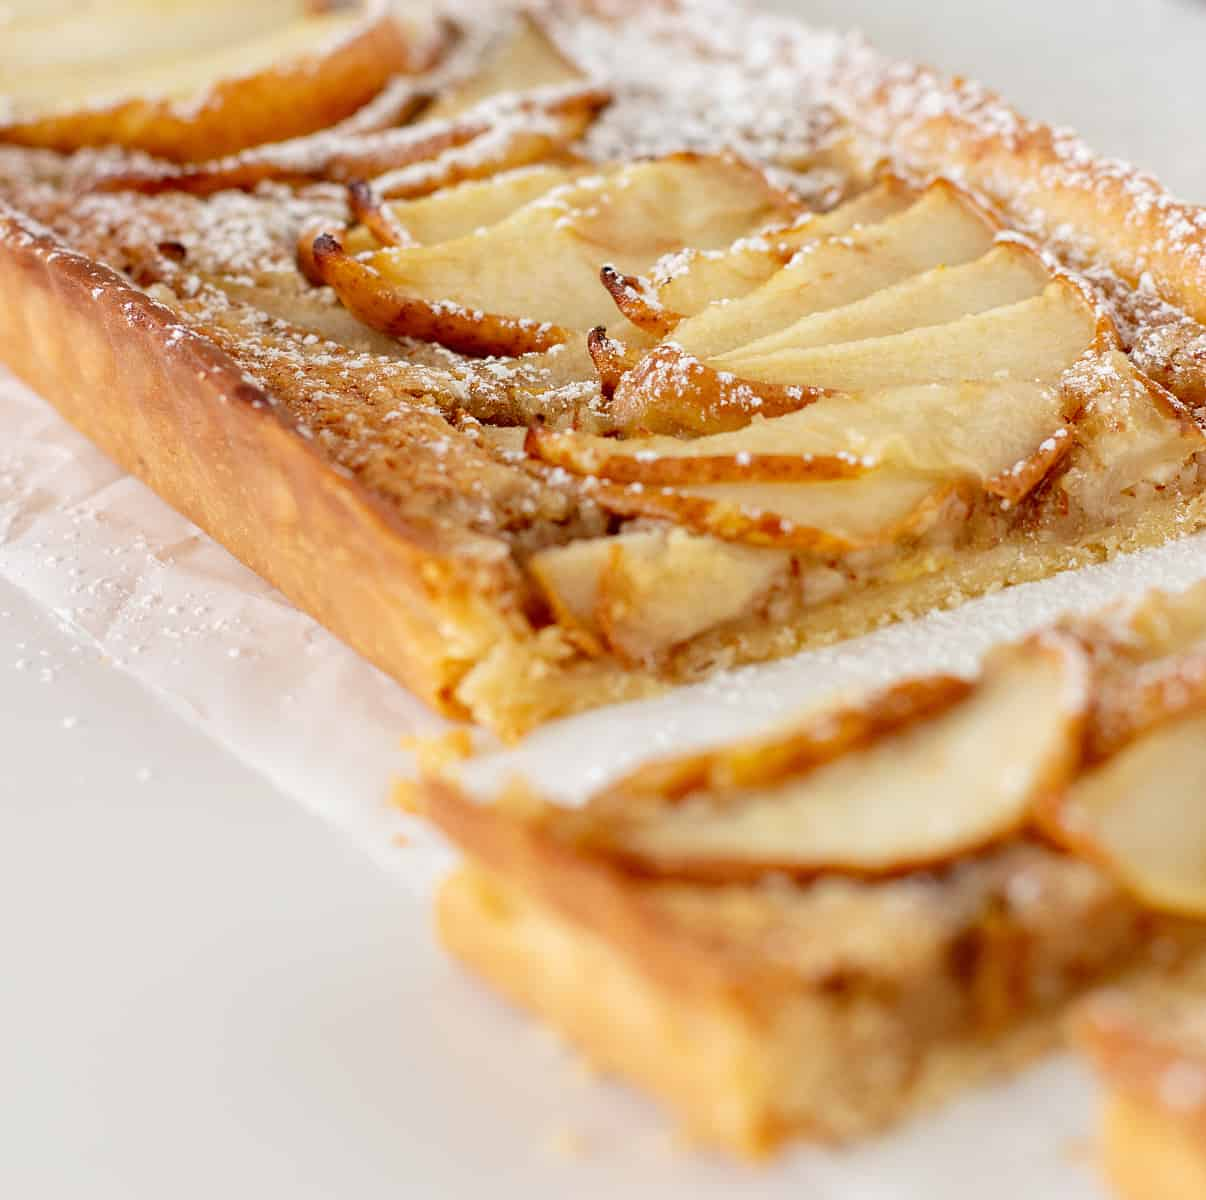 Partial view of pear frangipane tart on white surface